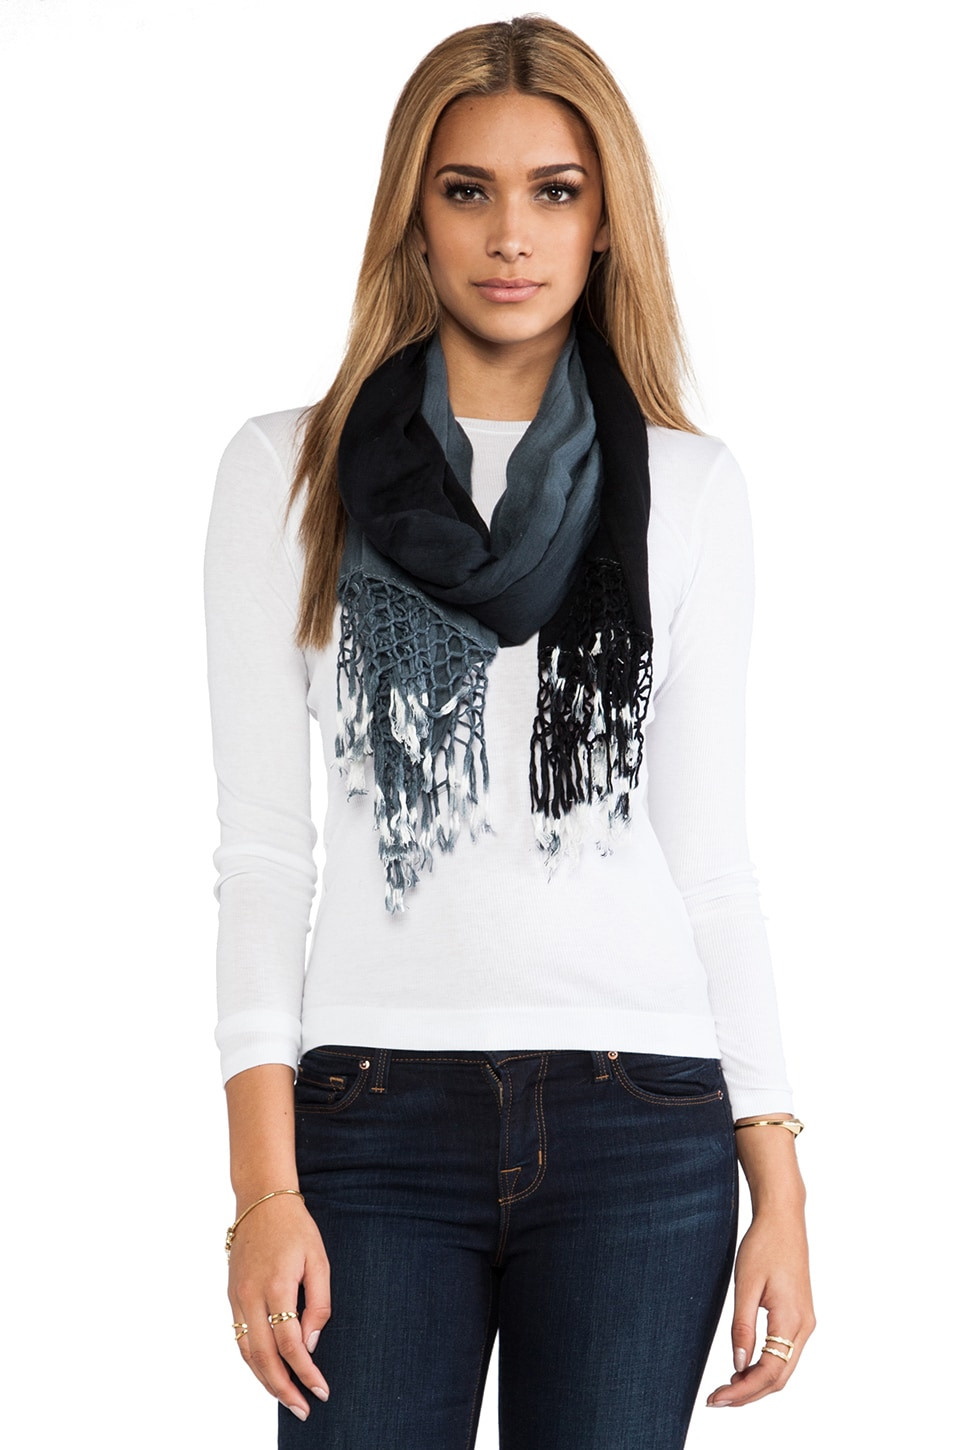 Gypsy 05 Foundation Ombre Scarf in Black